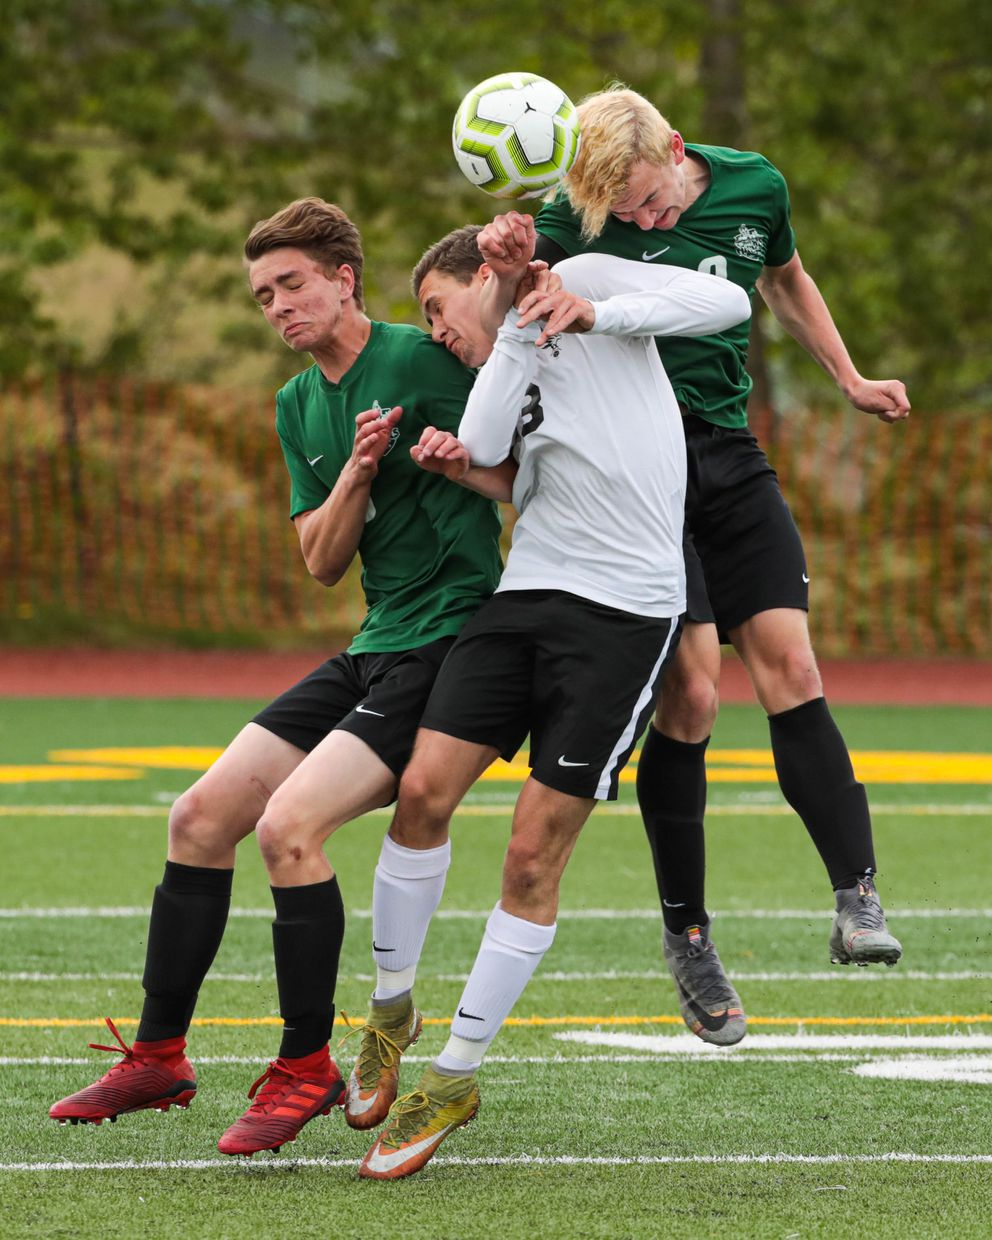 From left, Colony's Michael Silwa, West's Ben Bruen, and Colony's Noah Krozel all try to head the ball Saturday, May 25, 2019 during the state high school soccer match at Service High. (Loren Holmes / ADN)